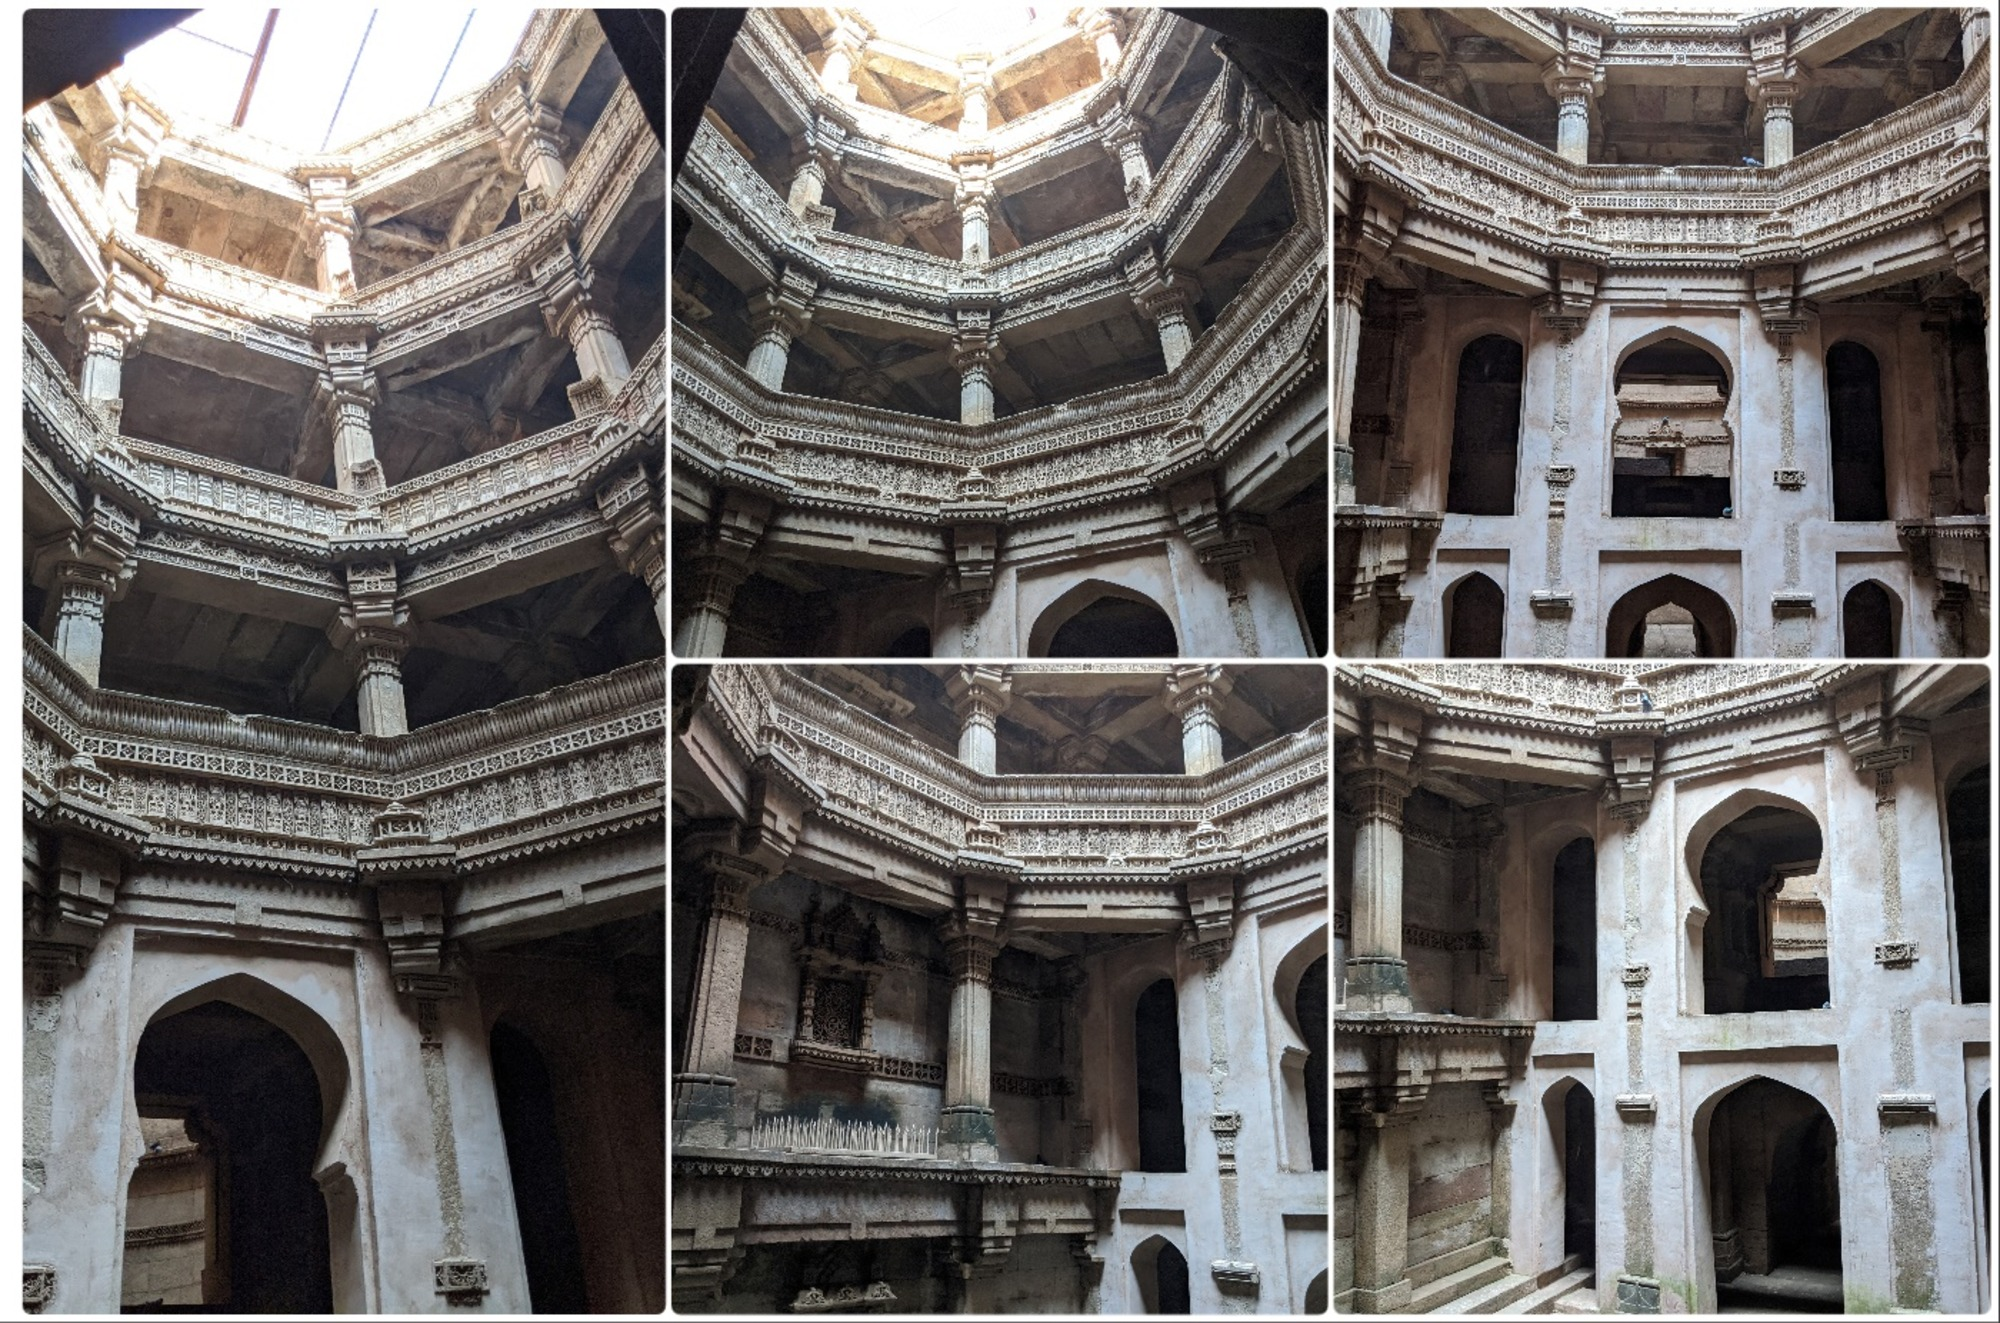 Above the square floor, columns, beams, wall and arched openings spiral around; a feature that continues to the top. The top part of the well, however, is a vertical space open to the sky